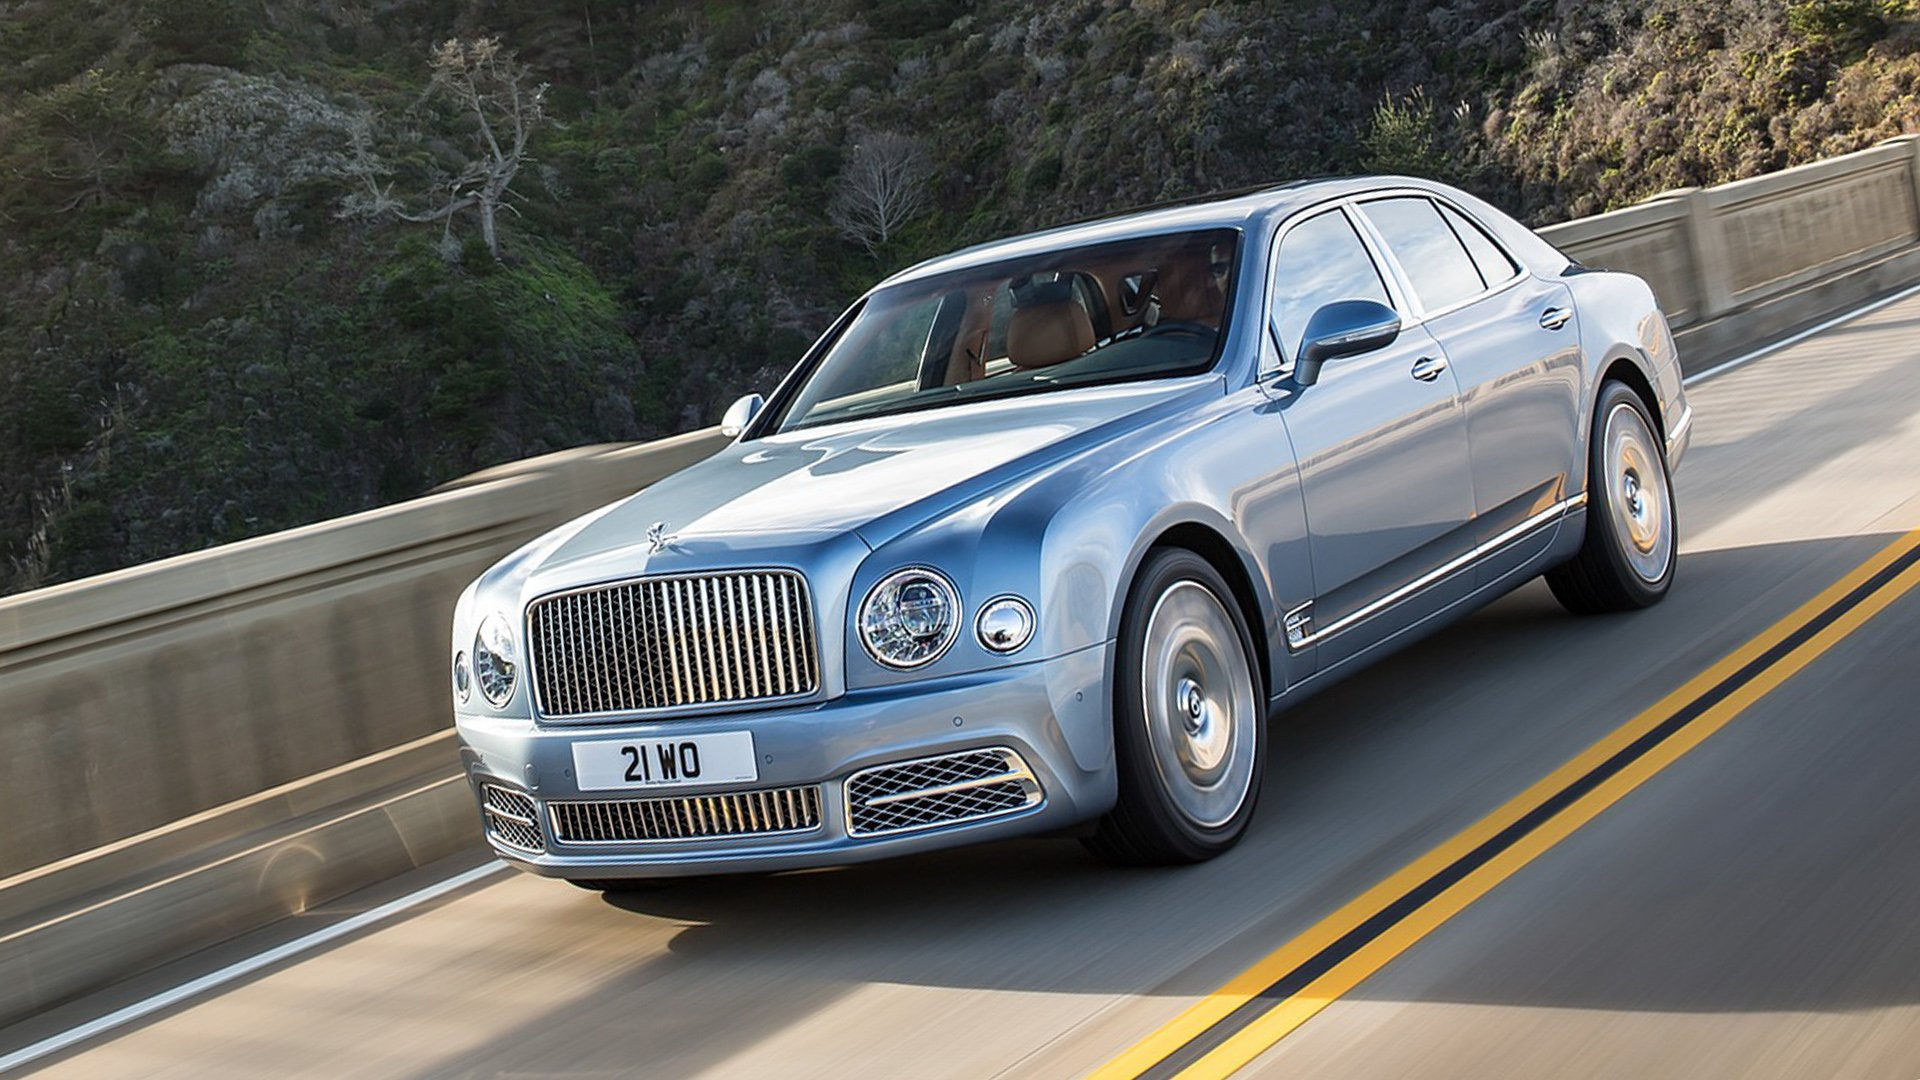 New 2019 Bentley Mulsanne Redesign